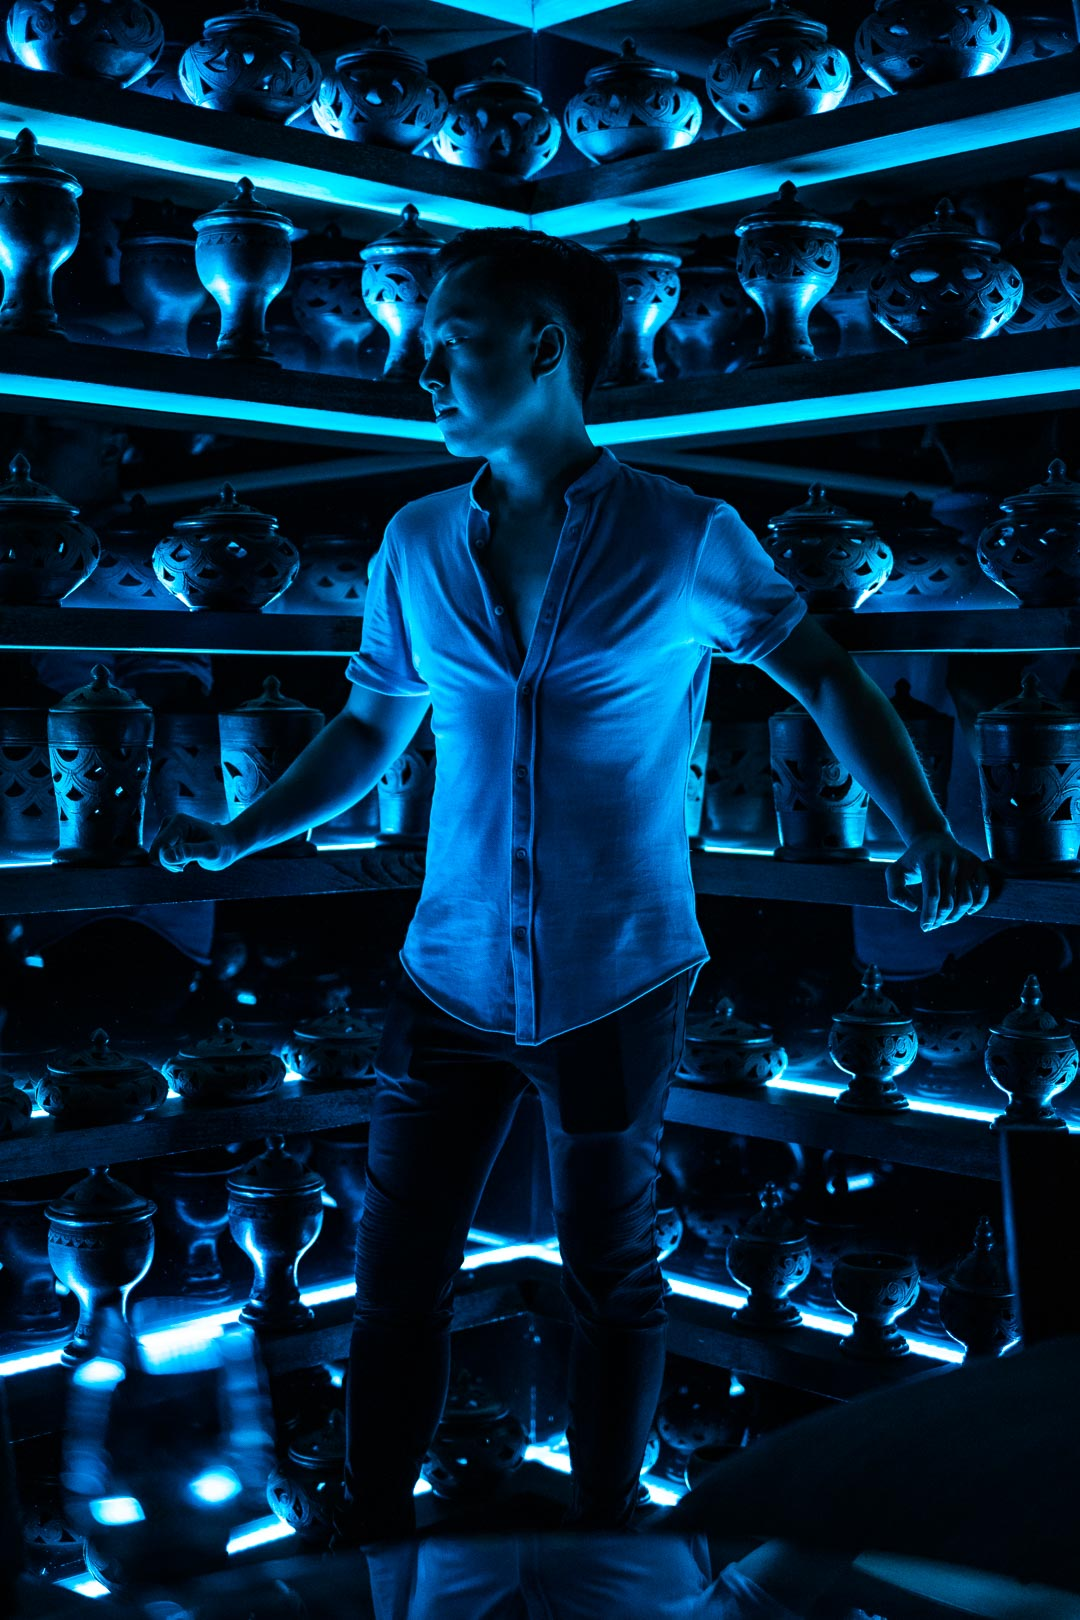 Male Asian model posing with blue neon colors